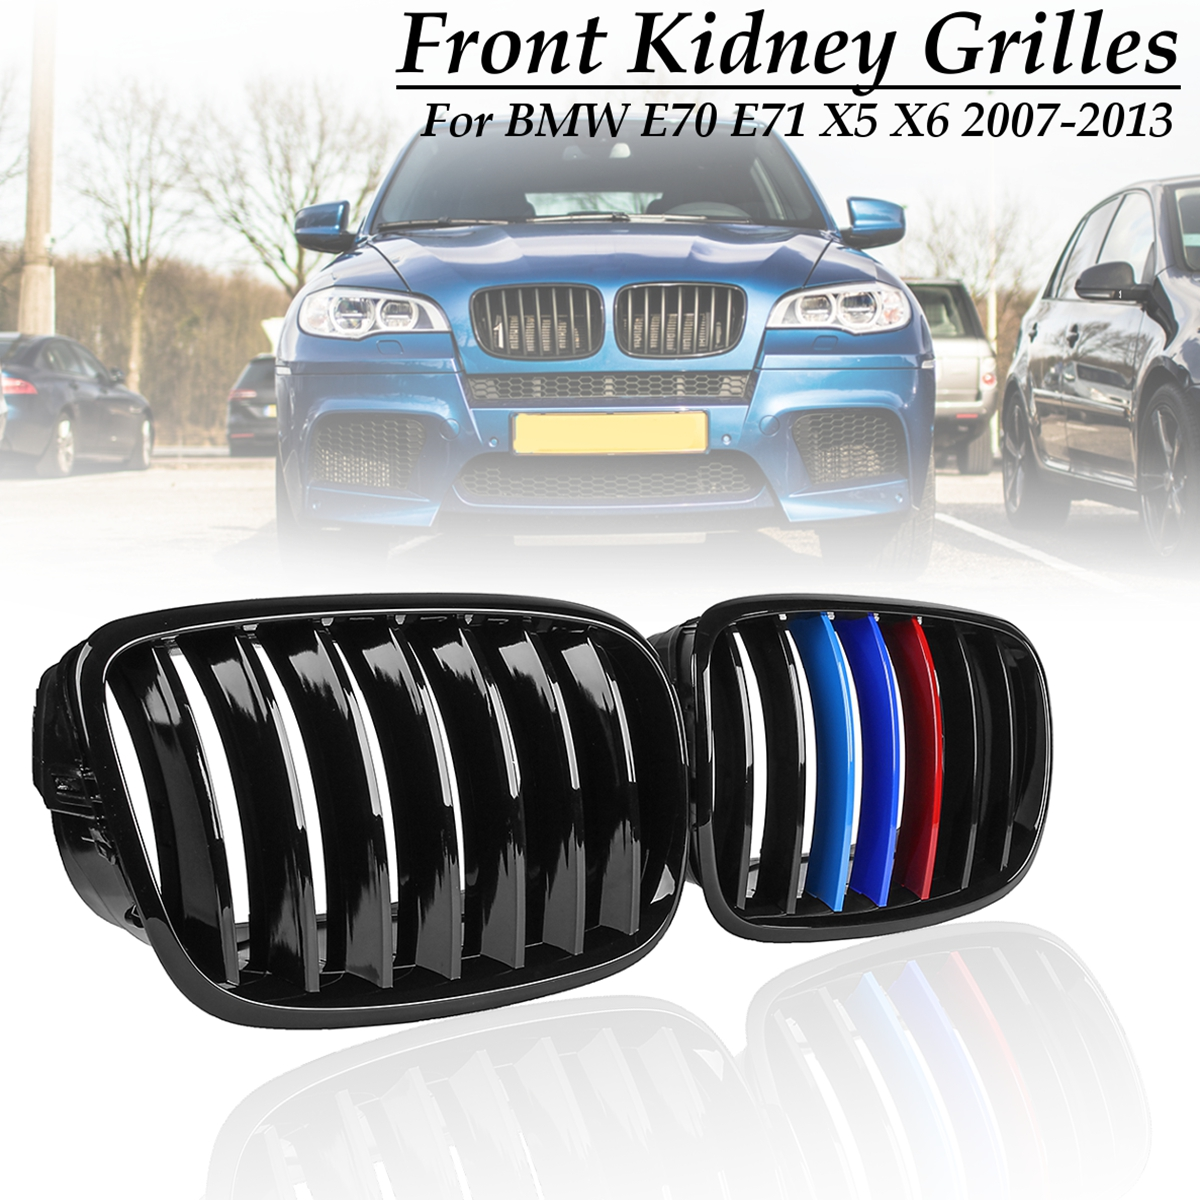 цена на Slat Front Kidney Grill Grilles for Gloss Black M-Color for BMW E70 E71 X5 X6 2007 2008 2009 2010 2011 2012 2013